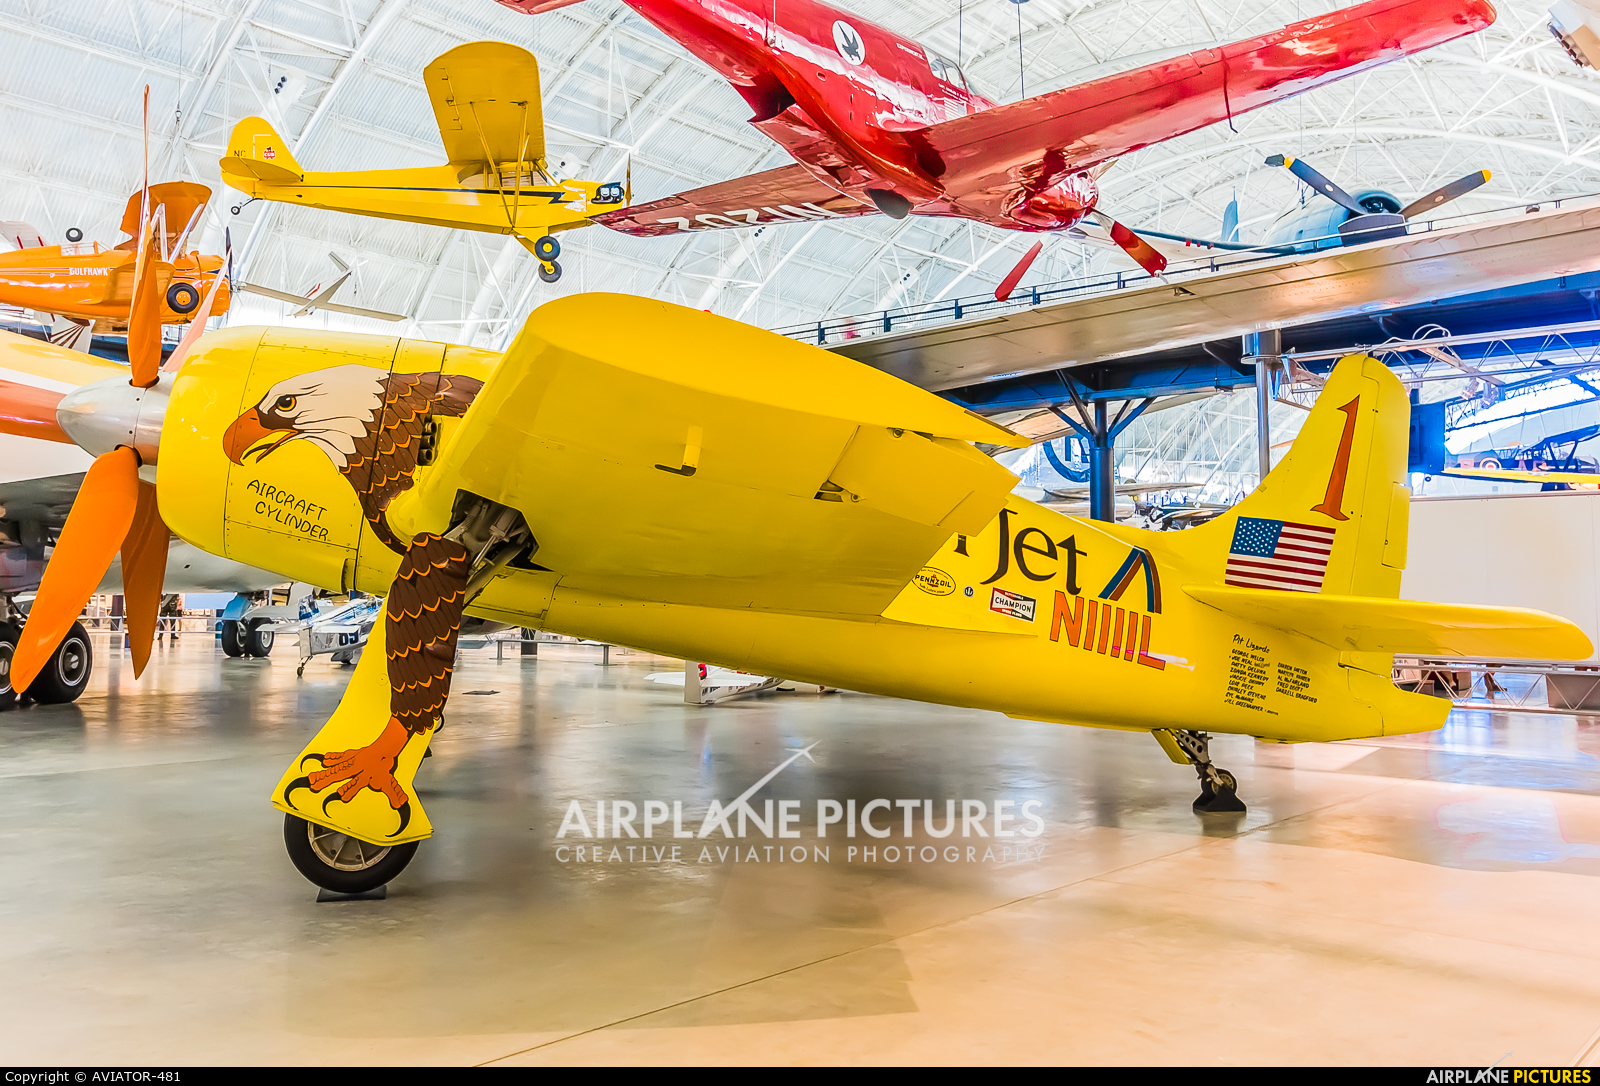 American Jet N1111L aircraft at Steven F. Udvar-Hazy Center